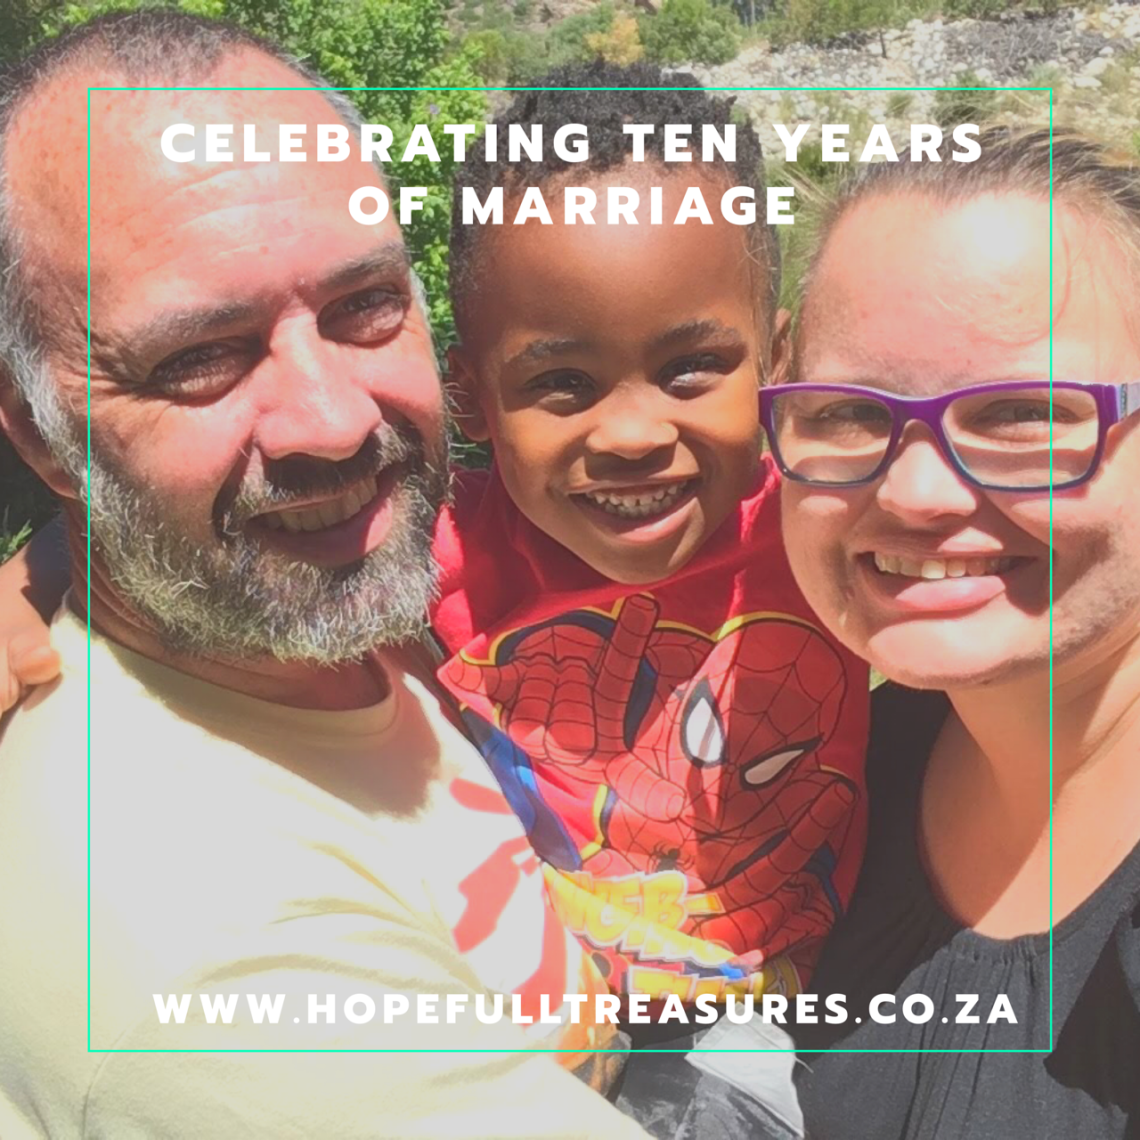 Family holiday celebrating 10 years of marriage